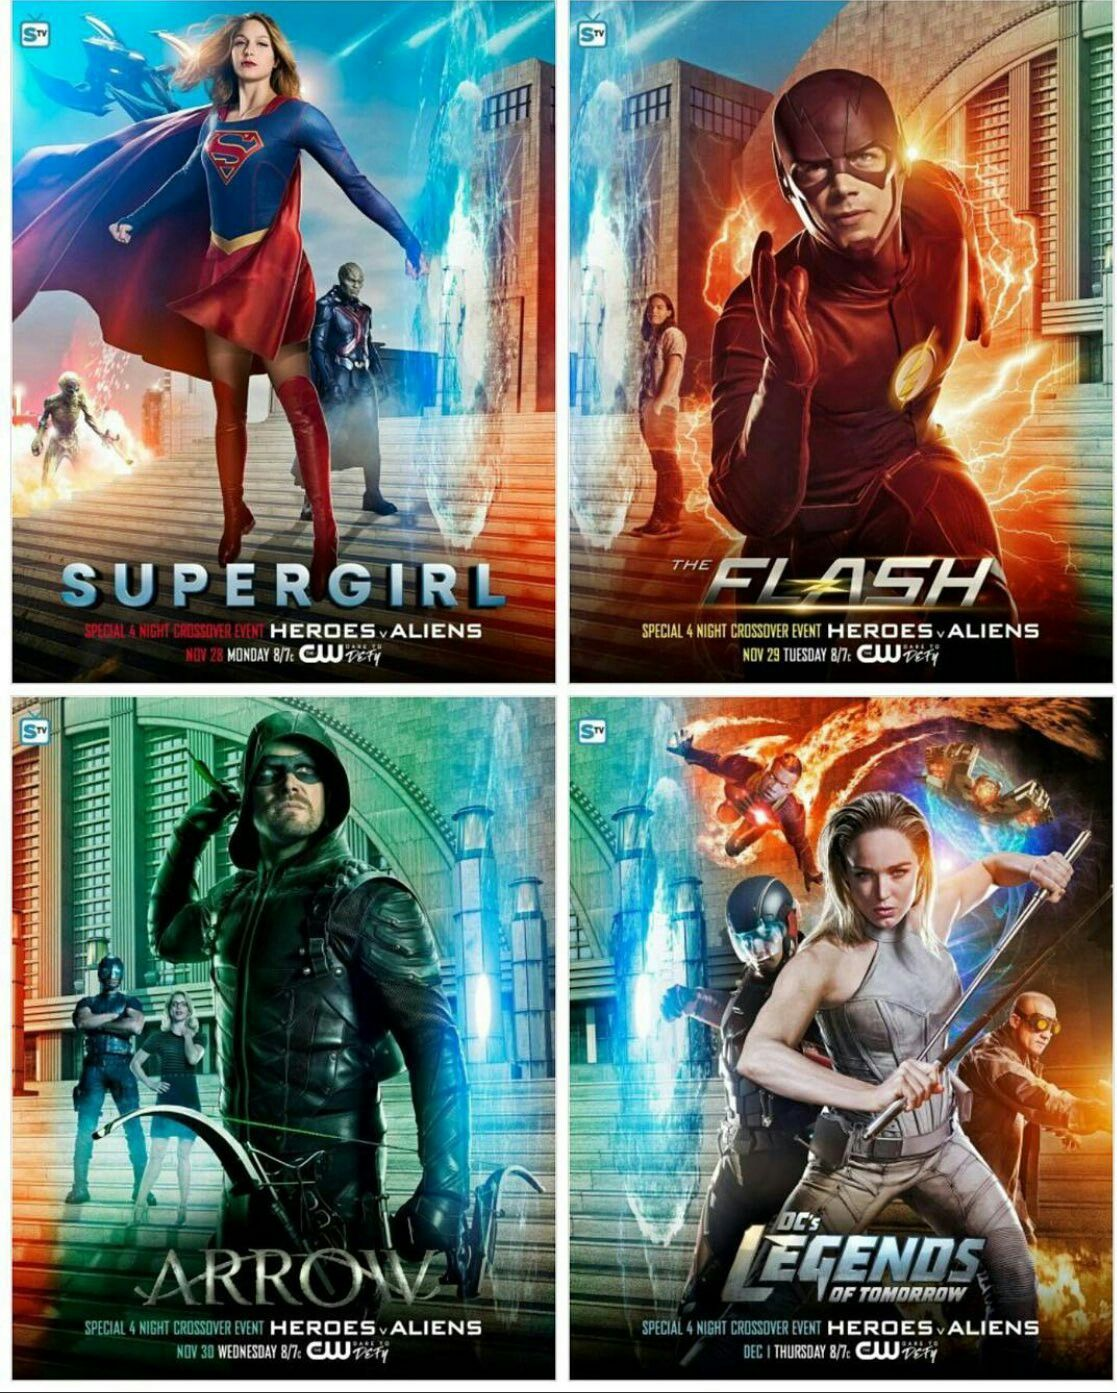 Pin By Lydia John On Dctv Dc Legends Of Tomorrow Supergirl And